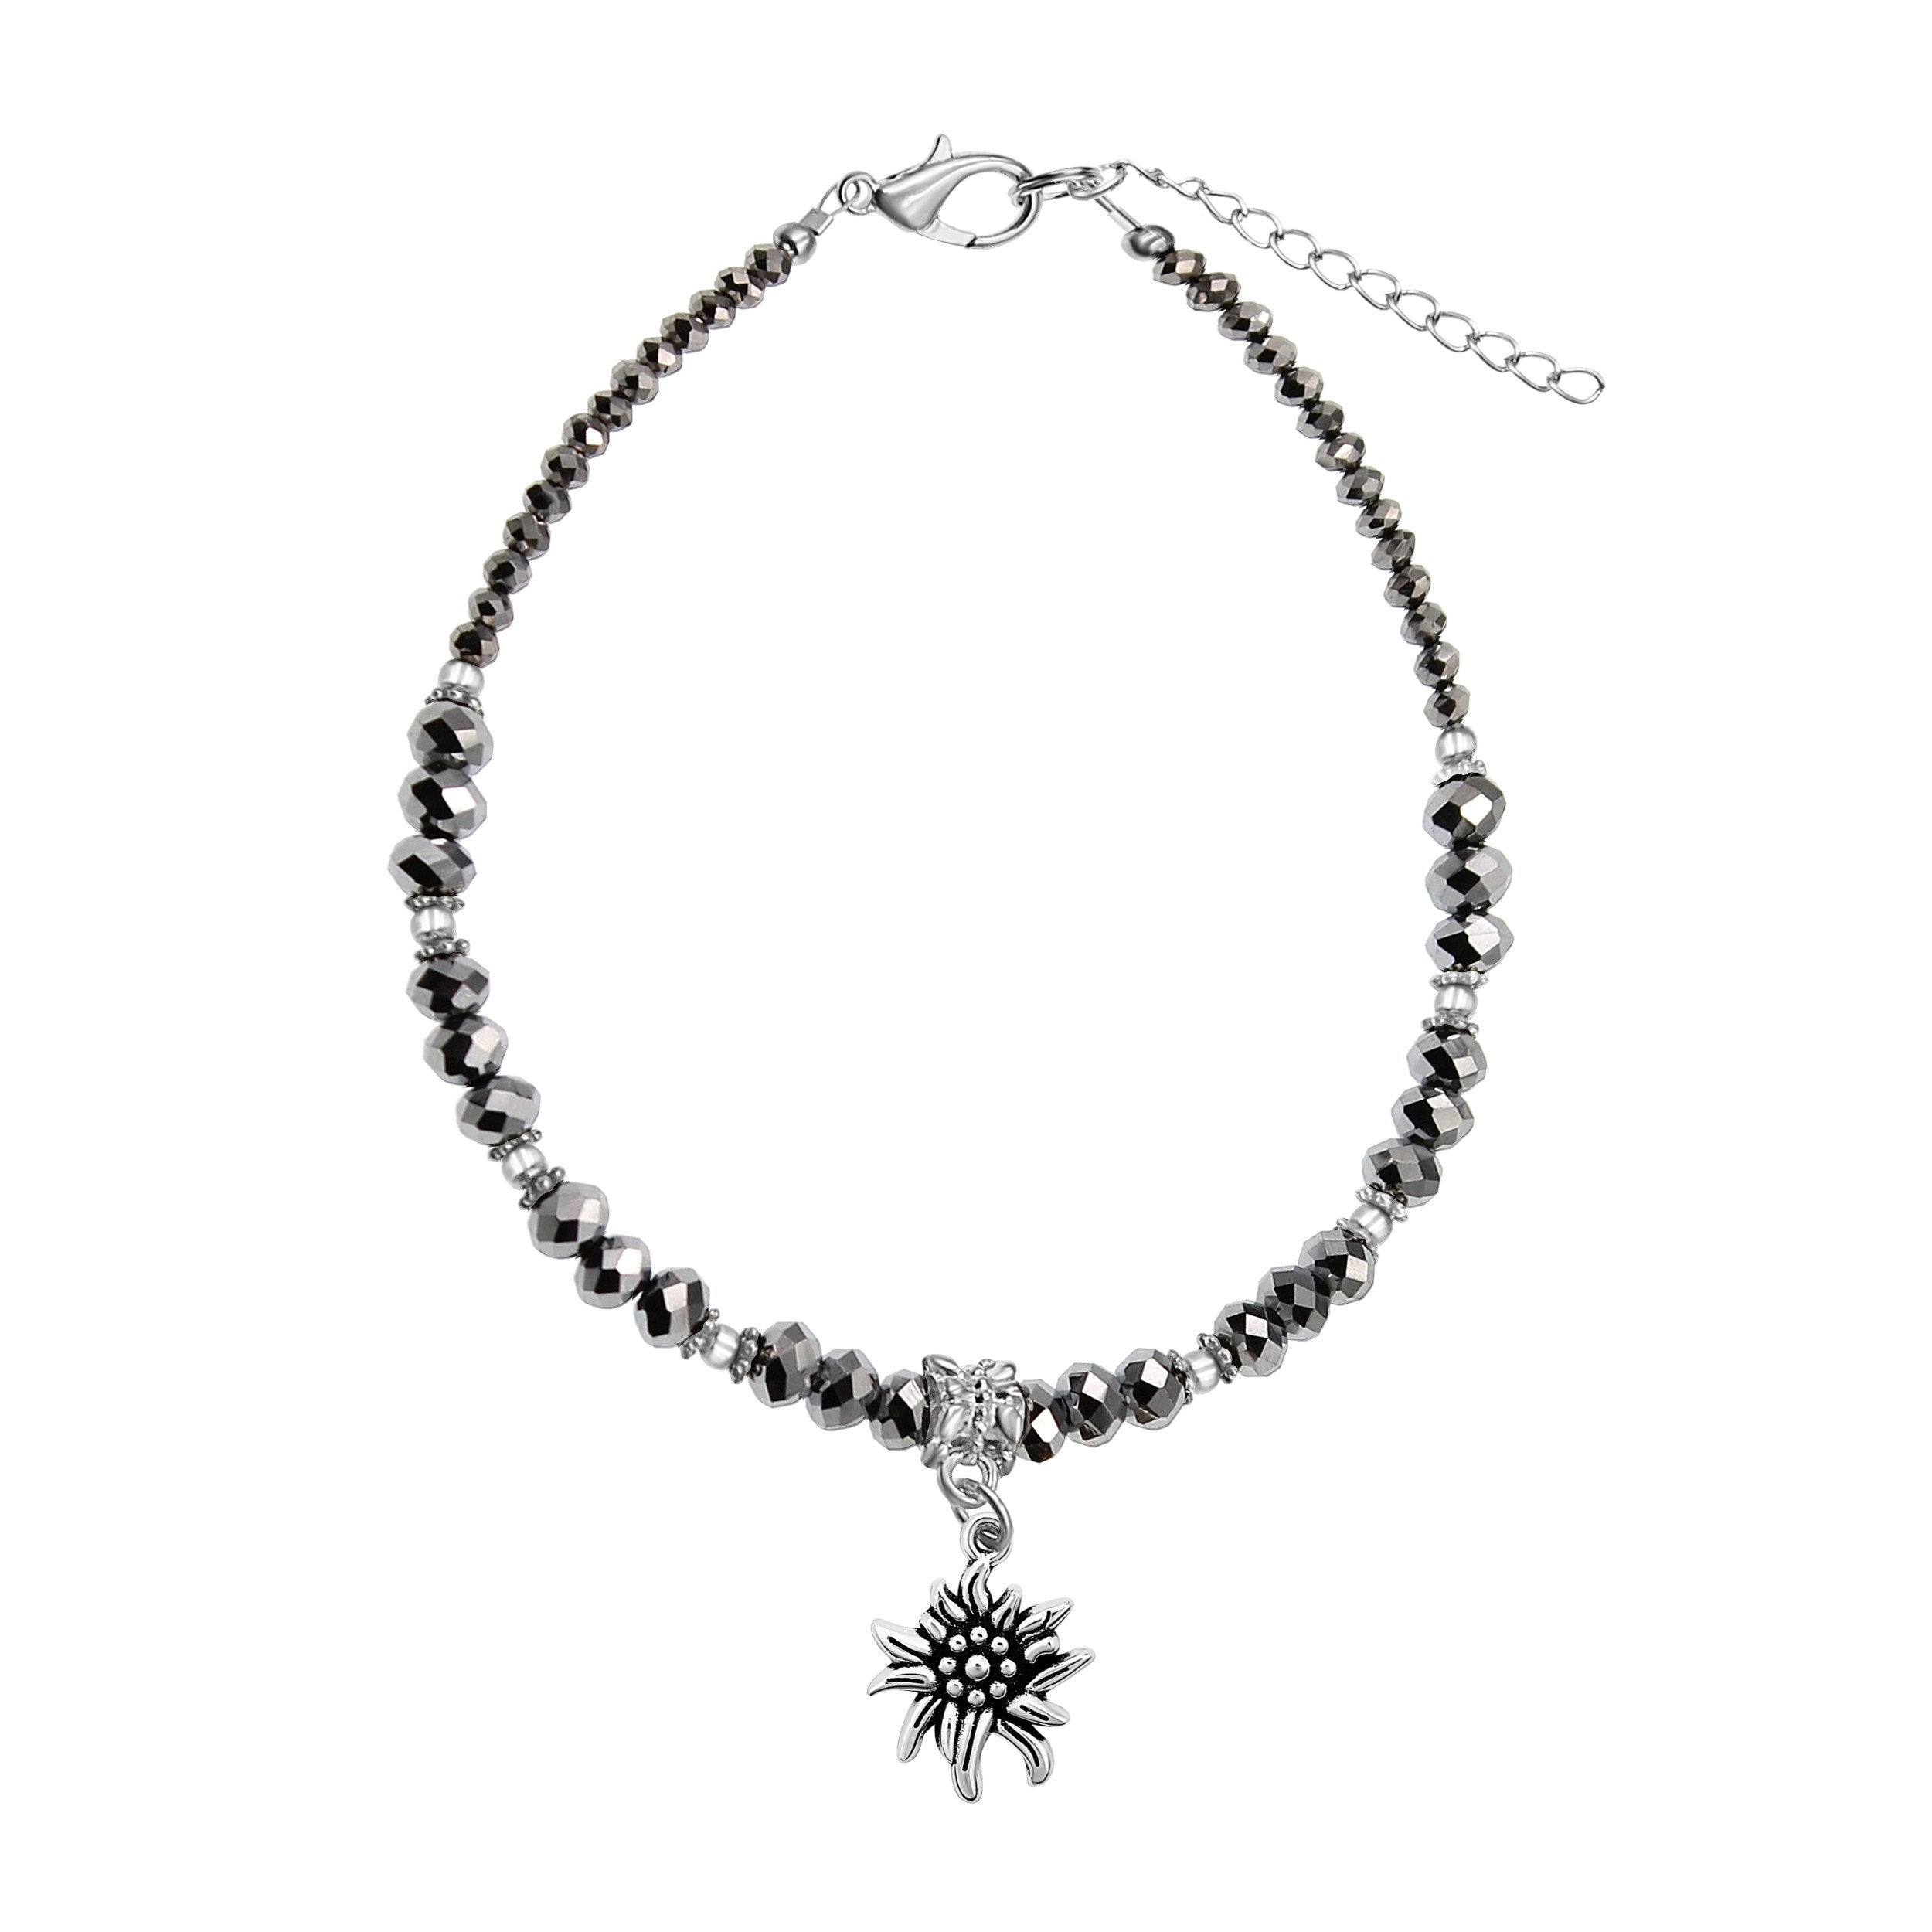 Hematite Crystal & Silvertone Eidleweiss Flower Charm Adjustable Anklet